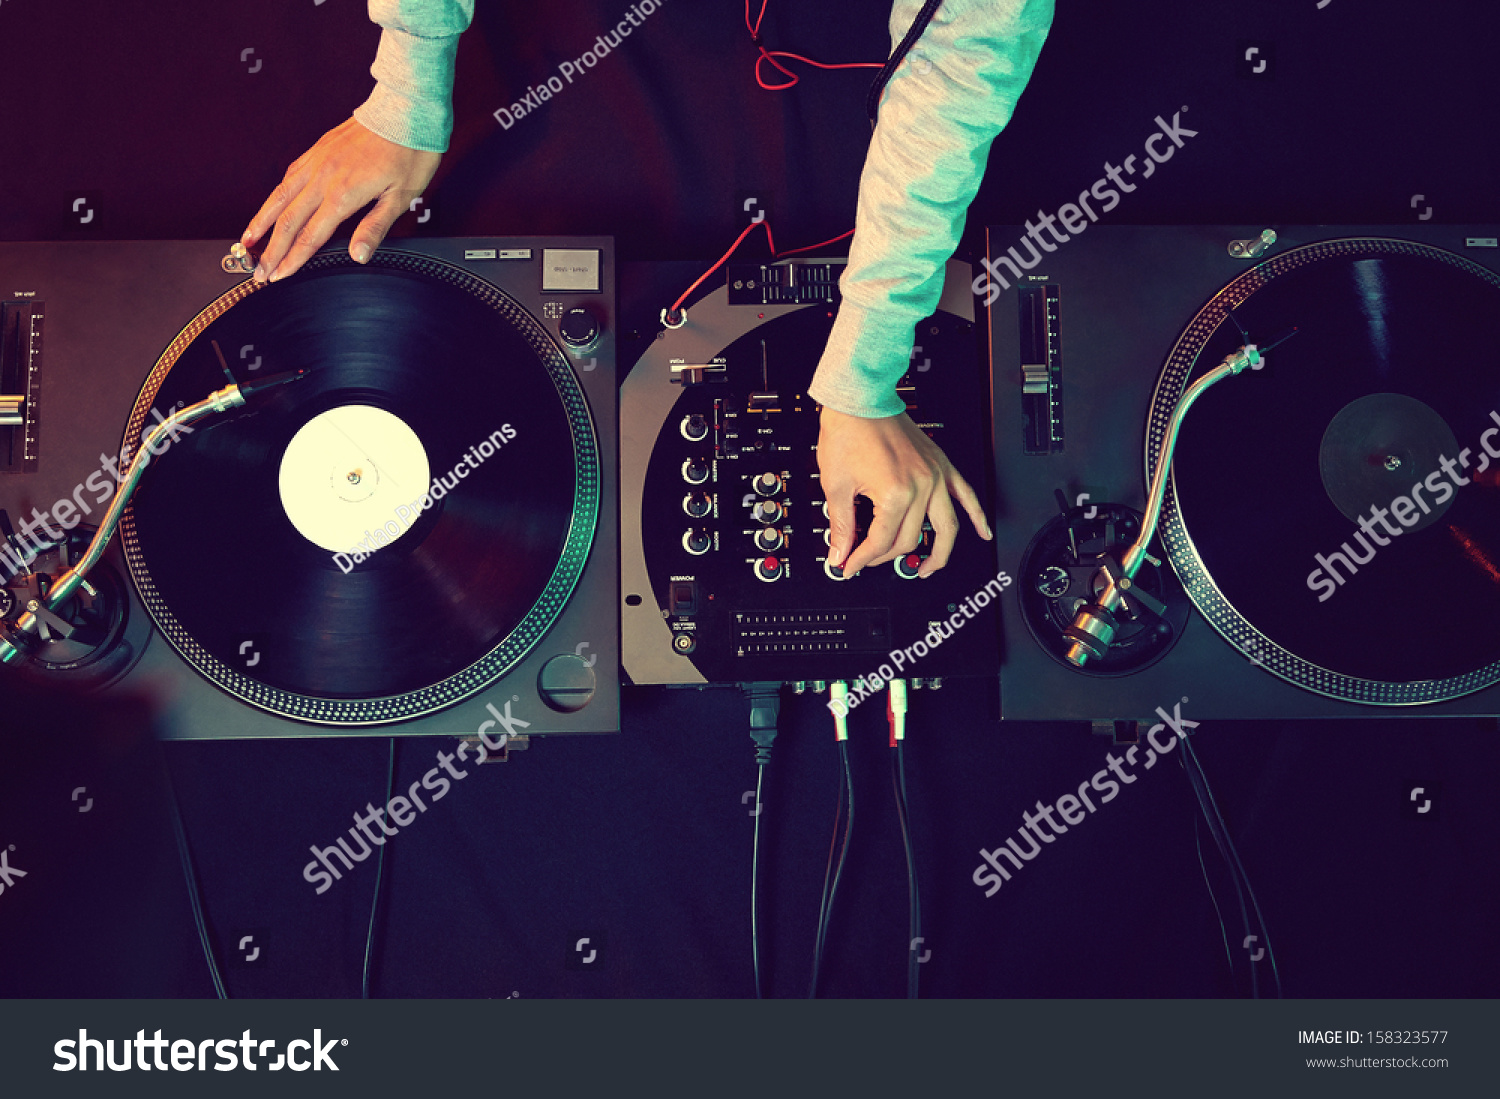 Dj hands on equipment deck and mixer with vinyl record at party #158323577